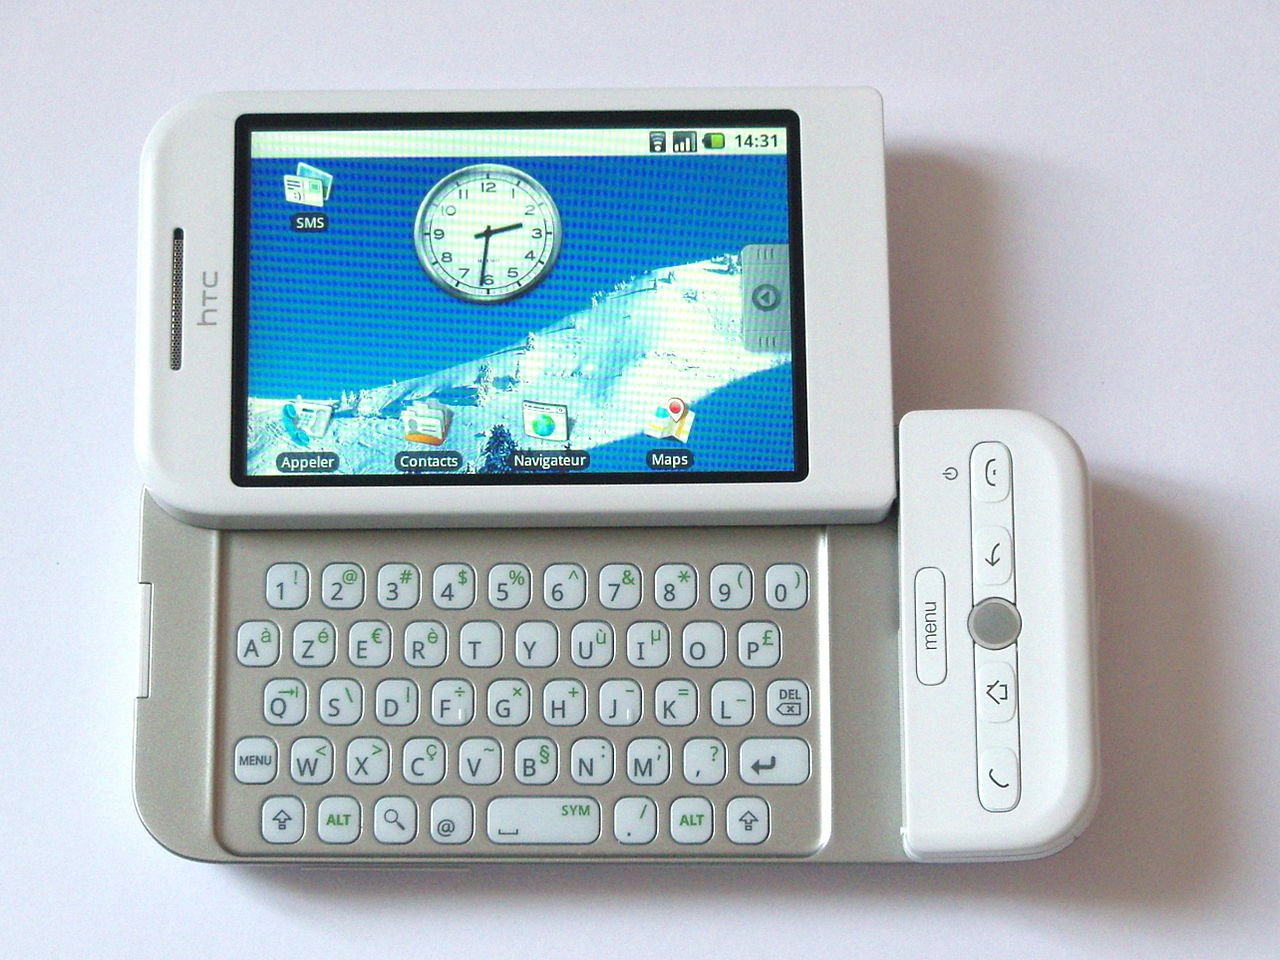 HTC Dream running in Android 1.6, 2008